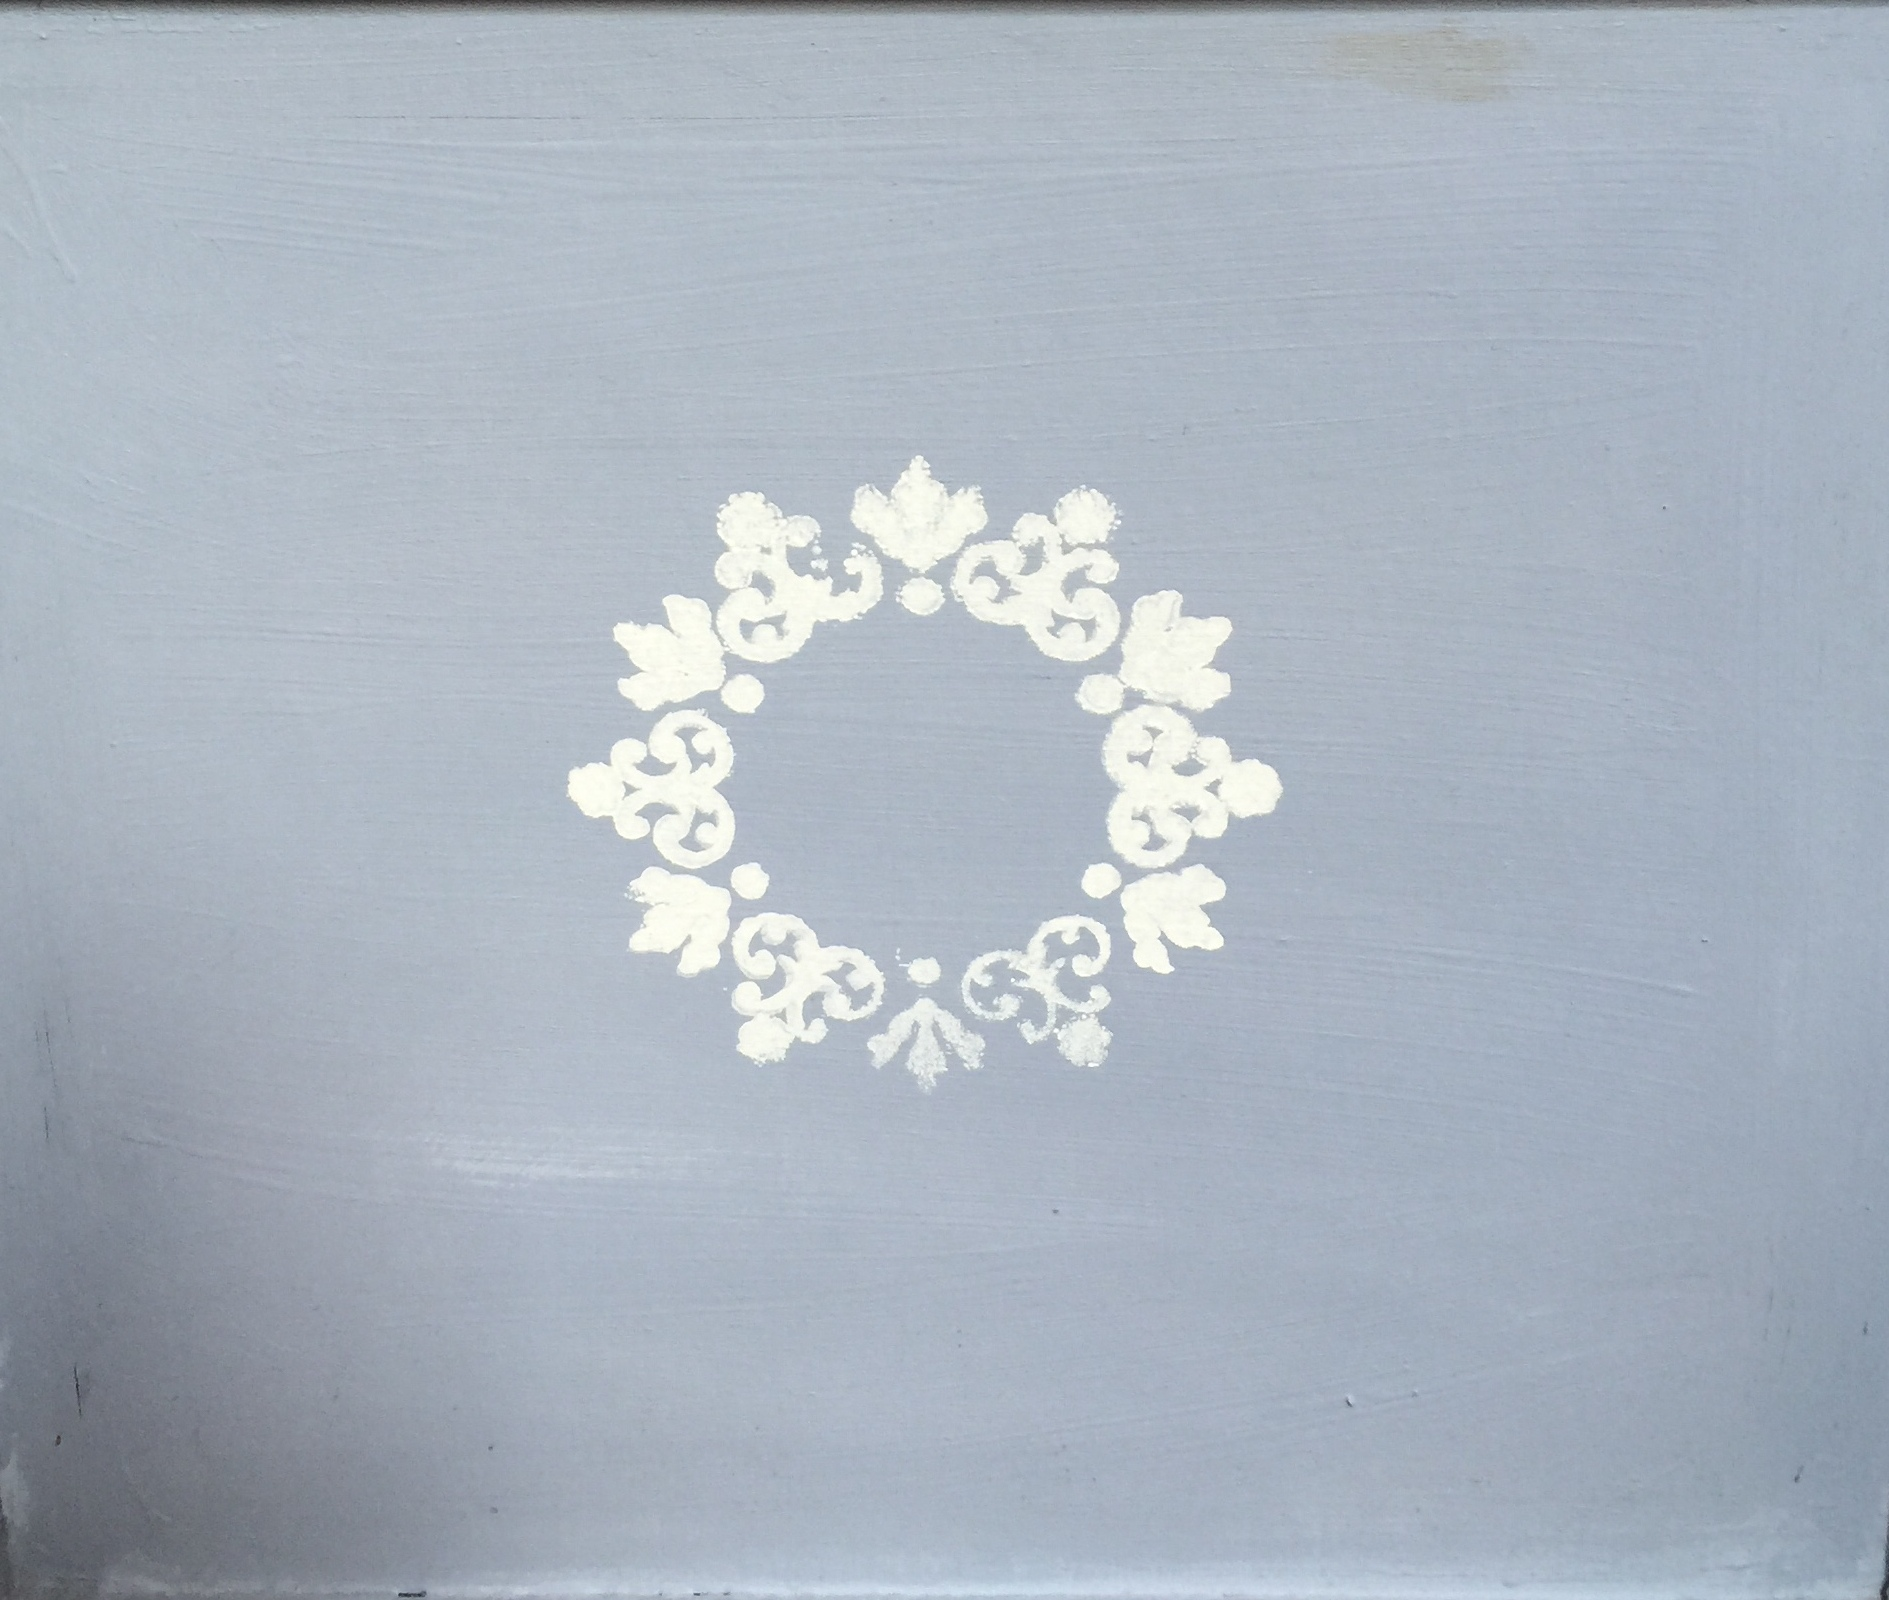 Stencil using chalkpaint